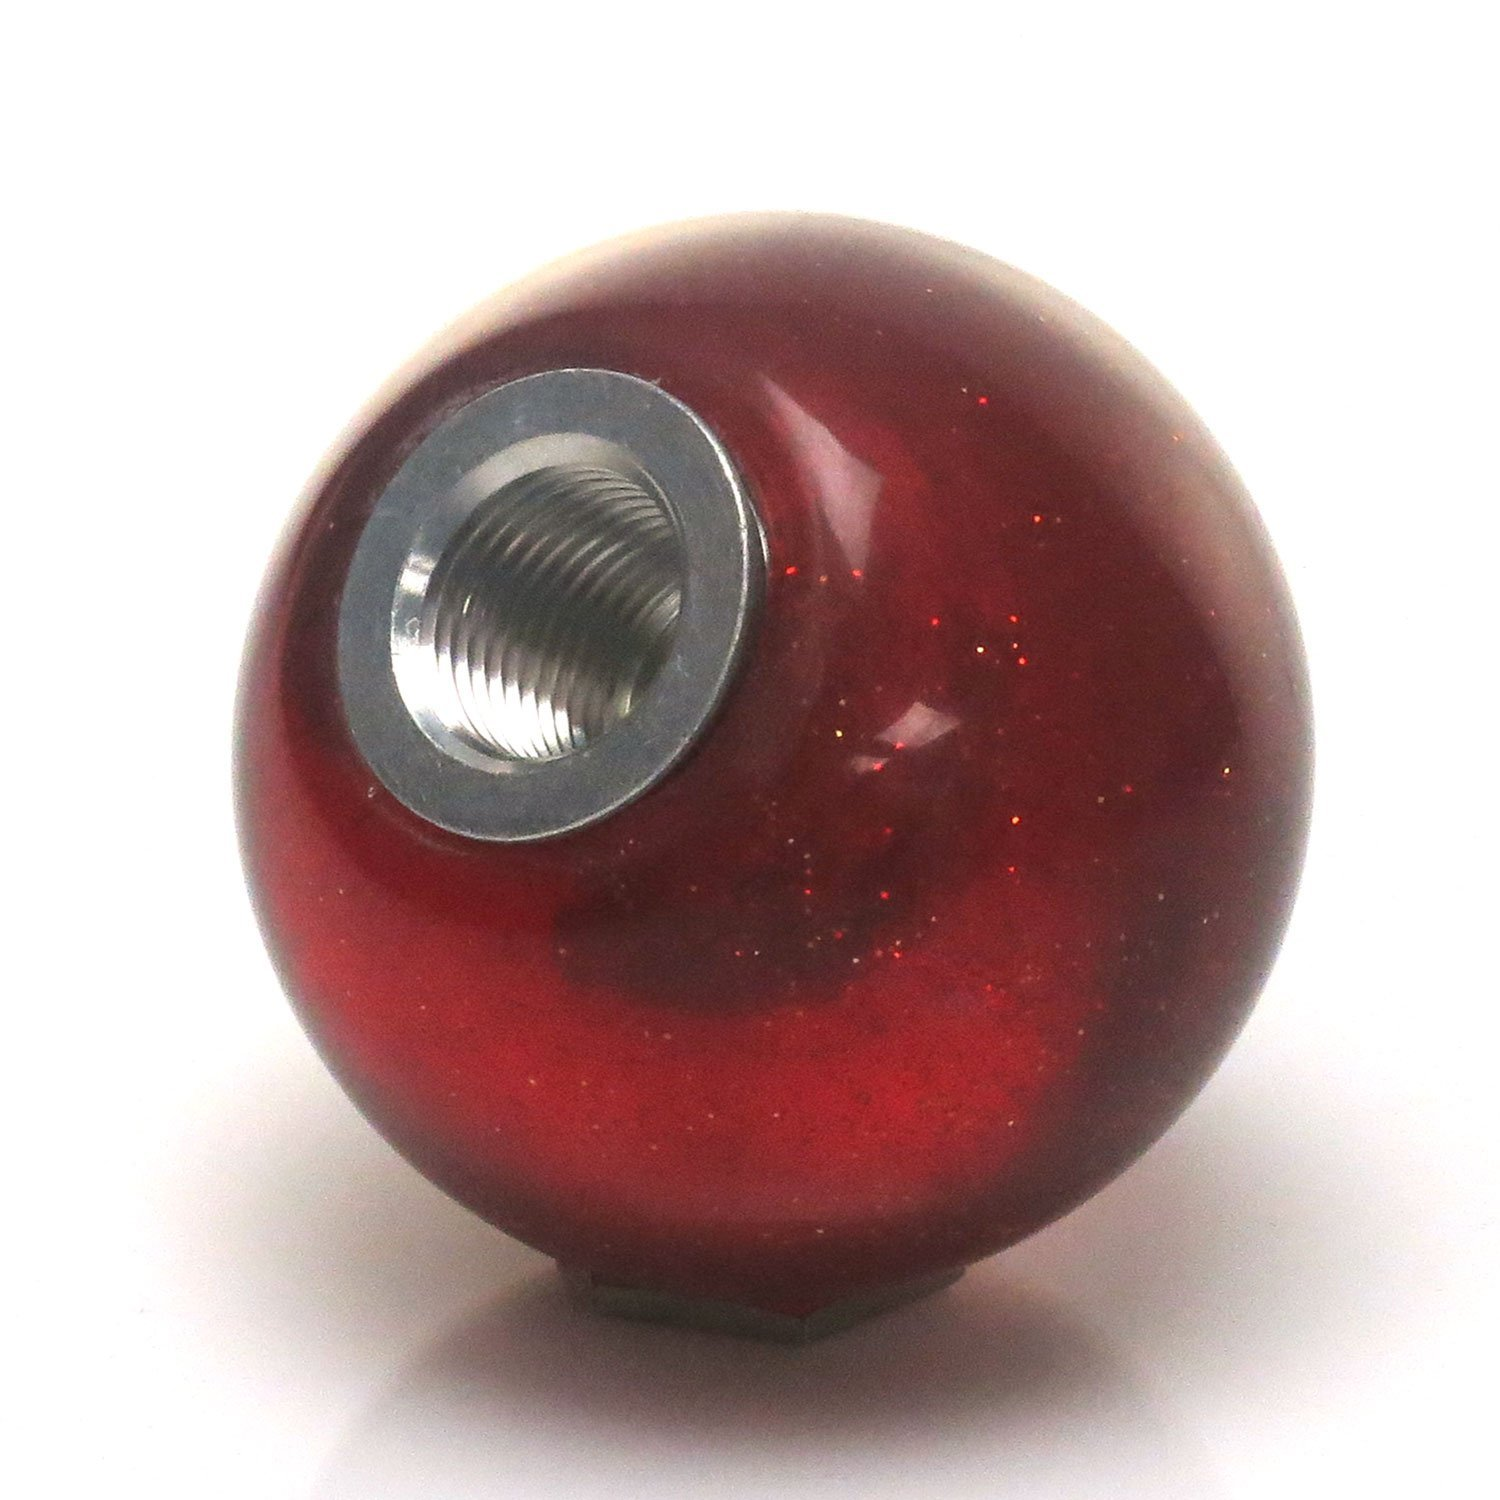 American Shifter 282230 Shift Knob Company Blue Okay Red Metal Flake with M16 x 1.5 Insert